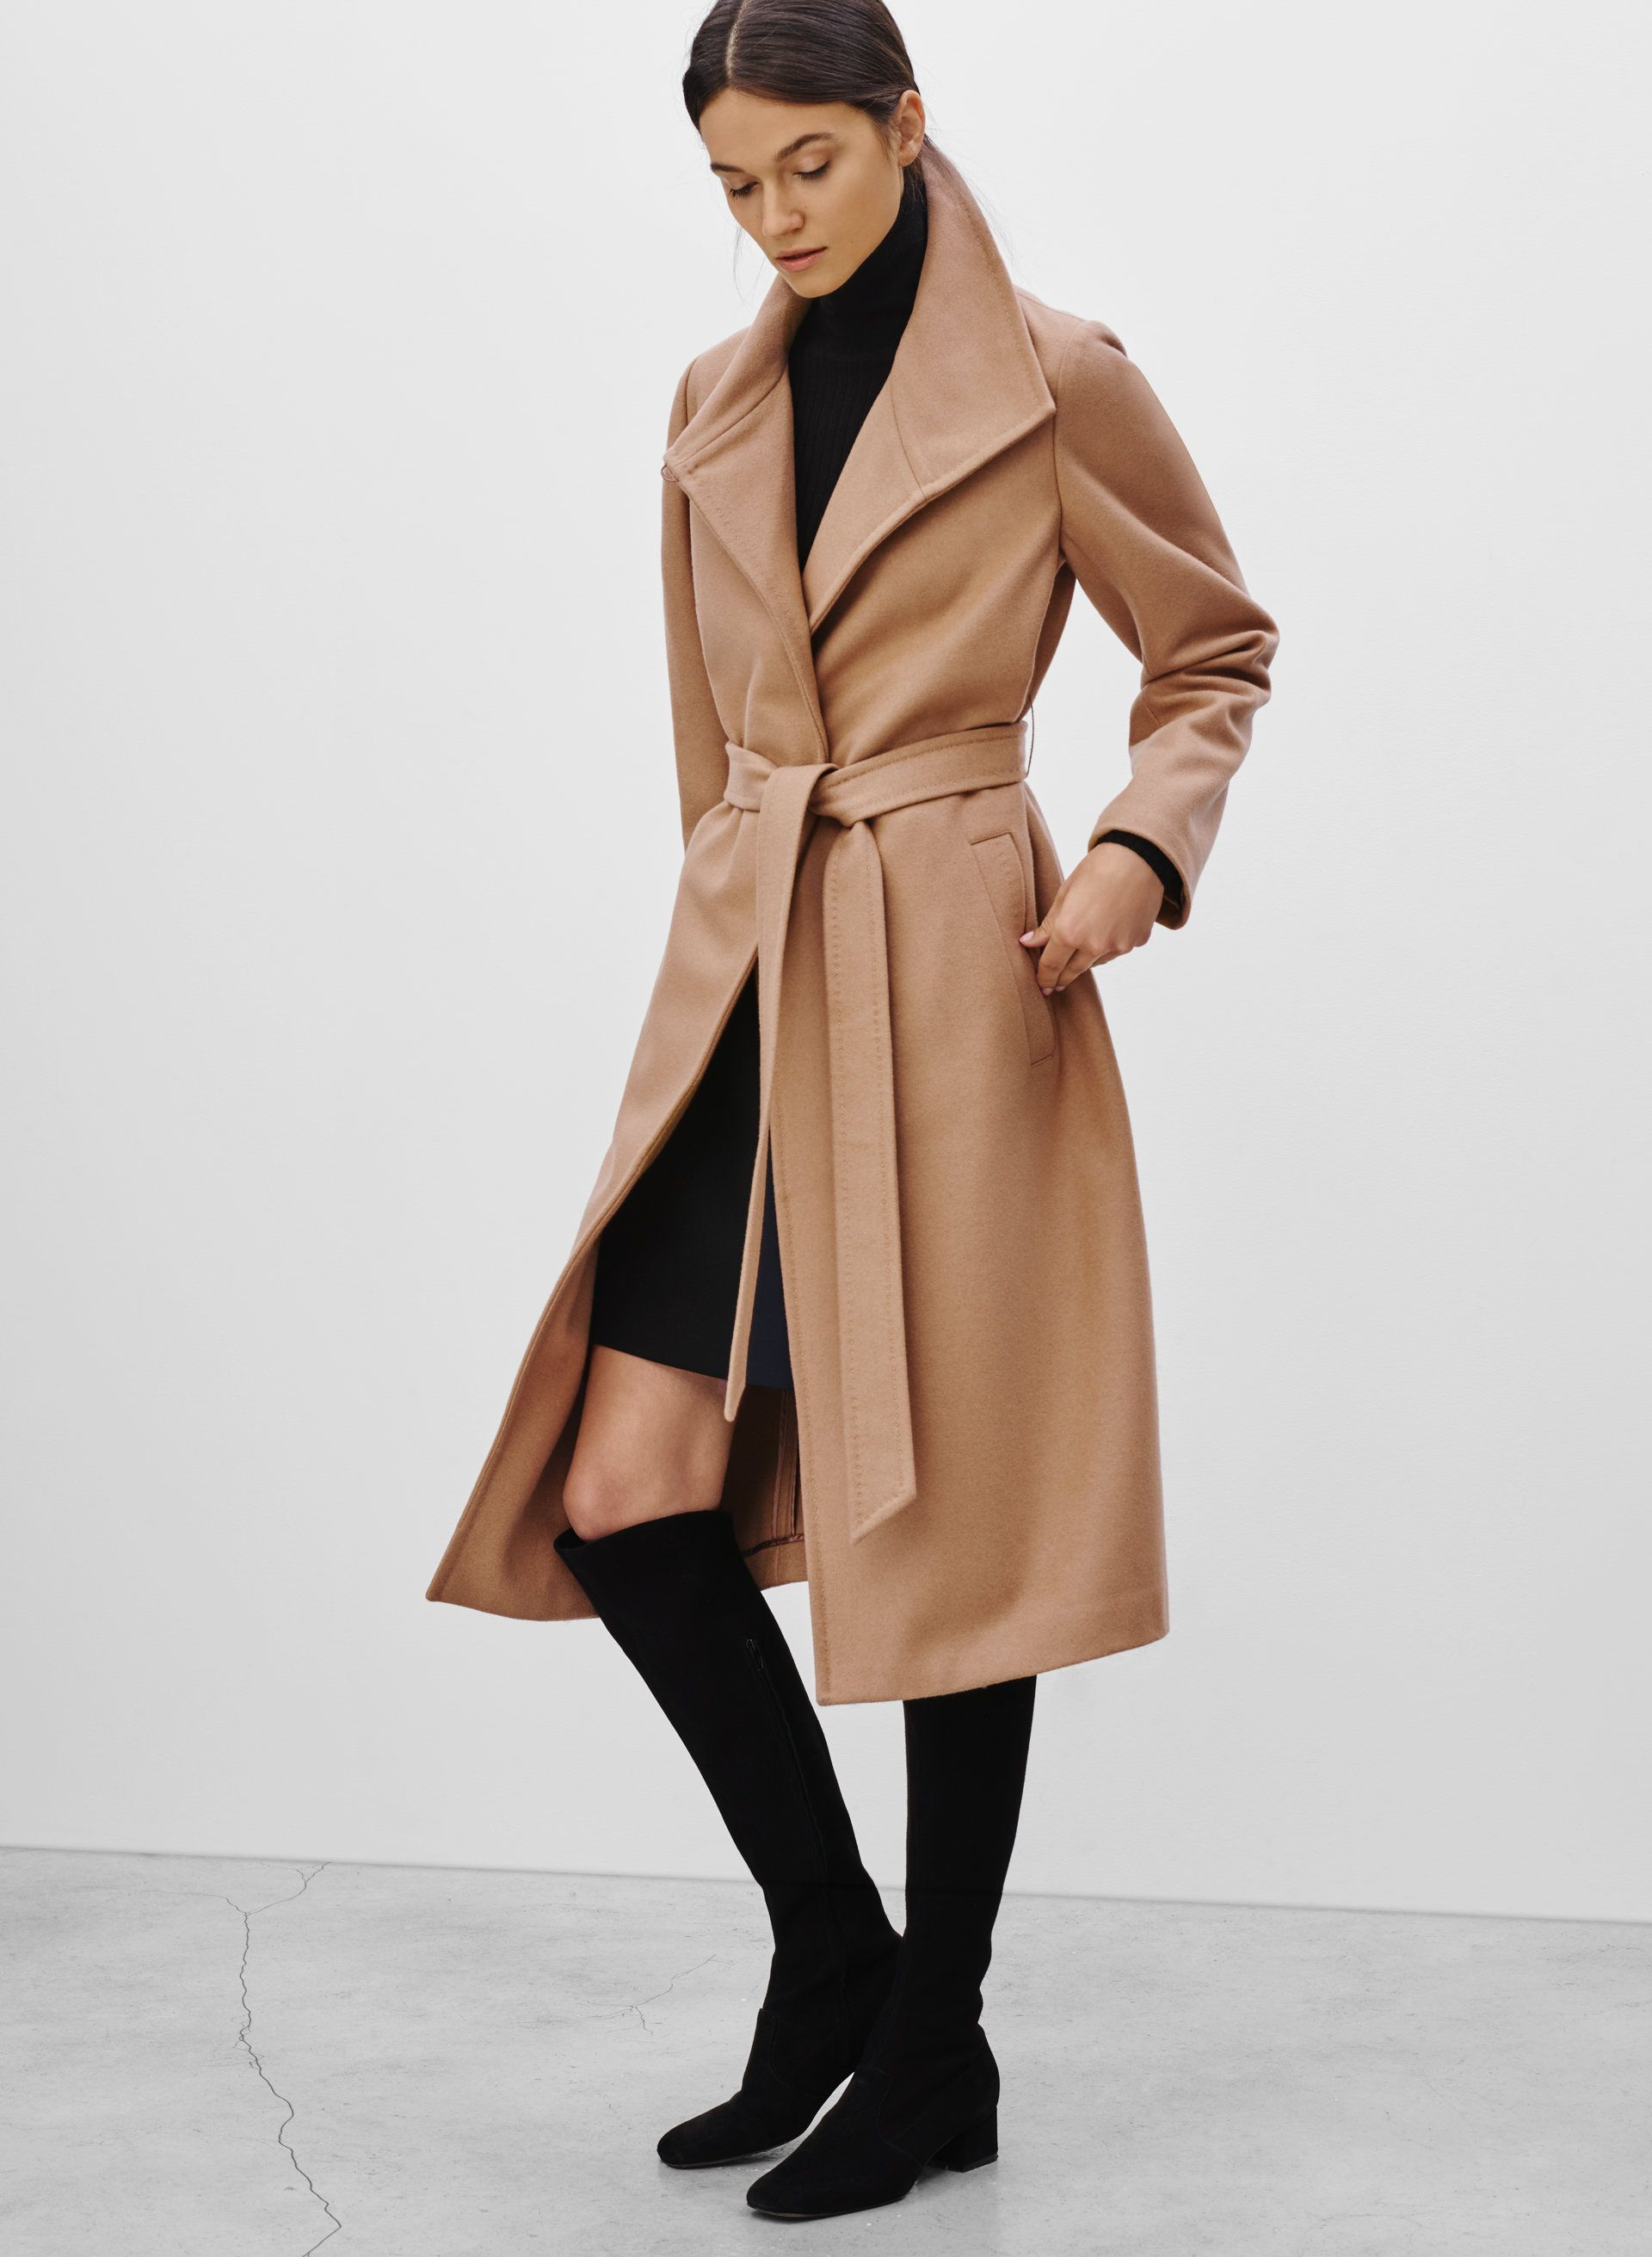 jacoby coat fall winter coats and winter #2: 4afed cdd4d8893fc0ecfa c